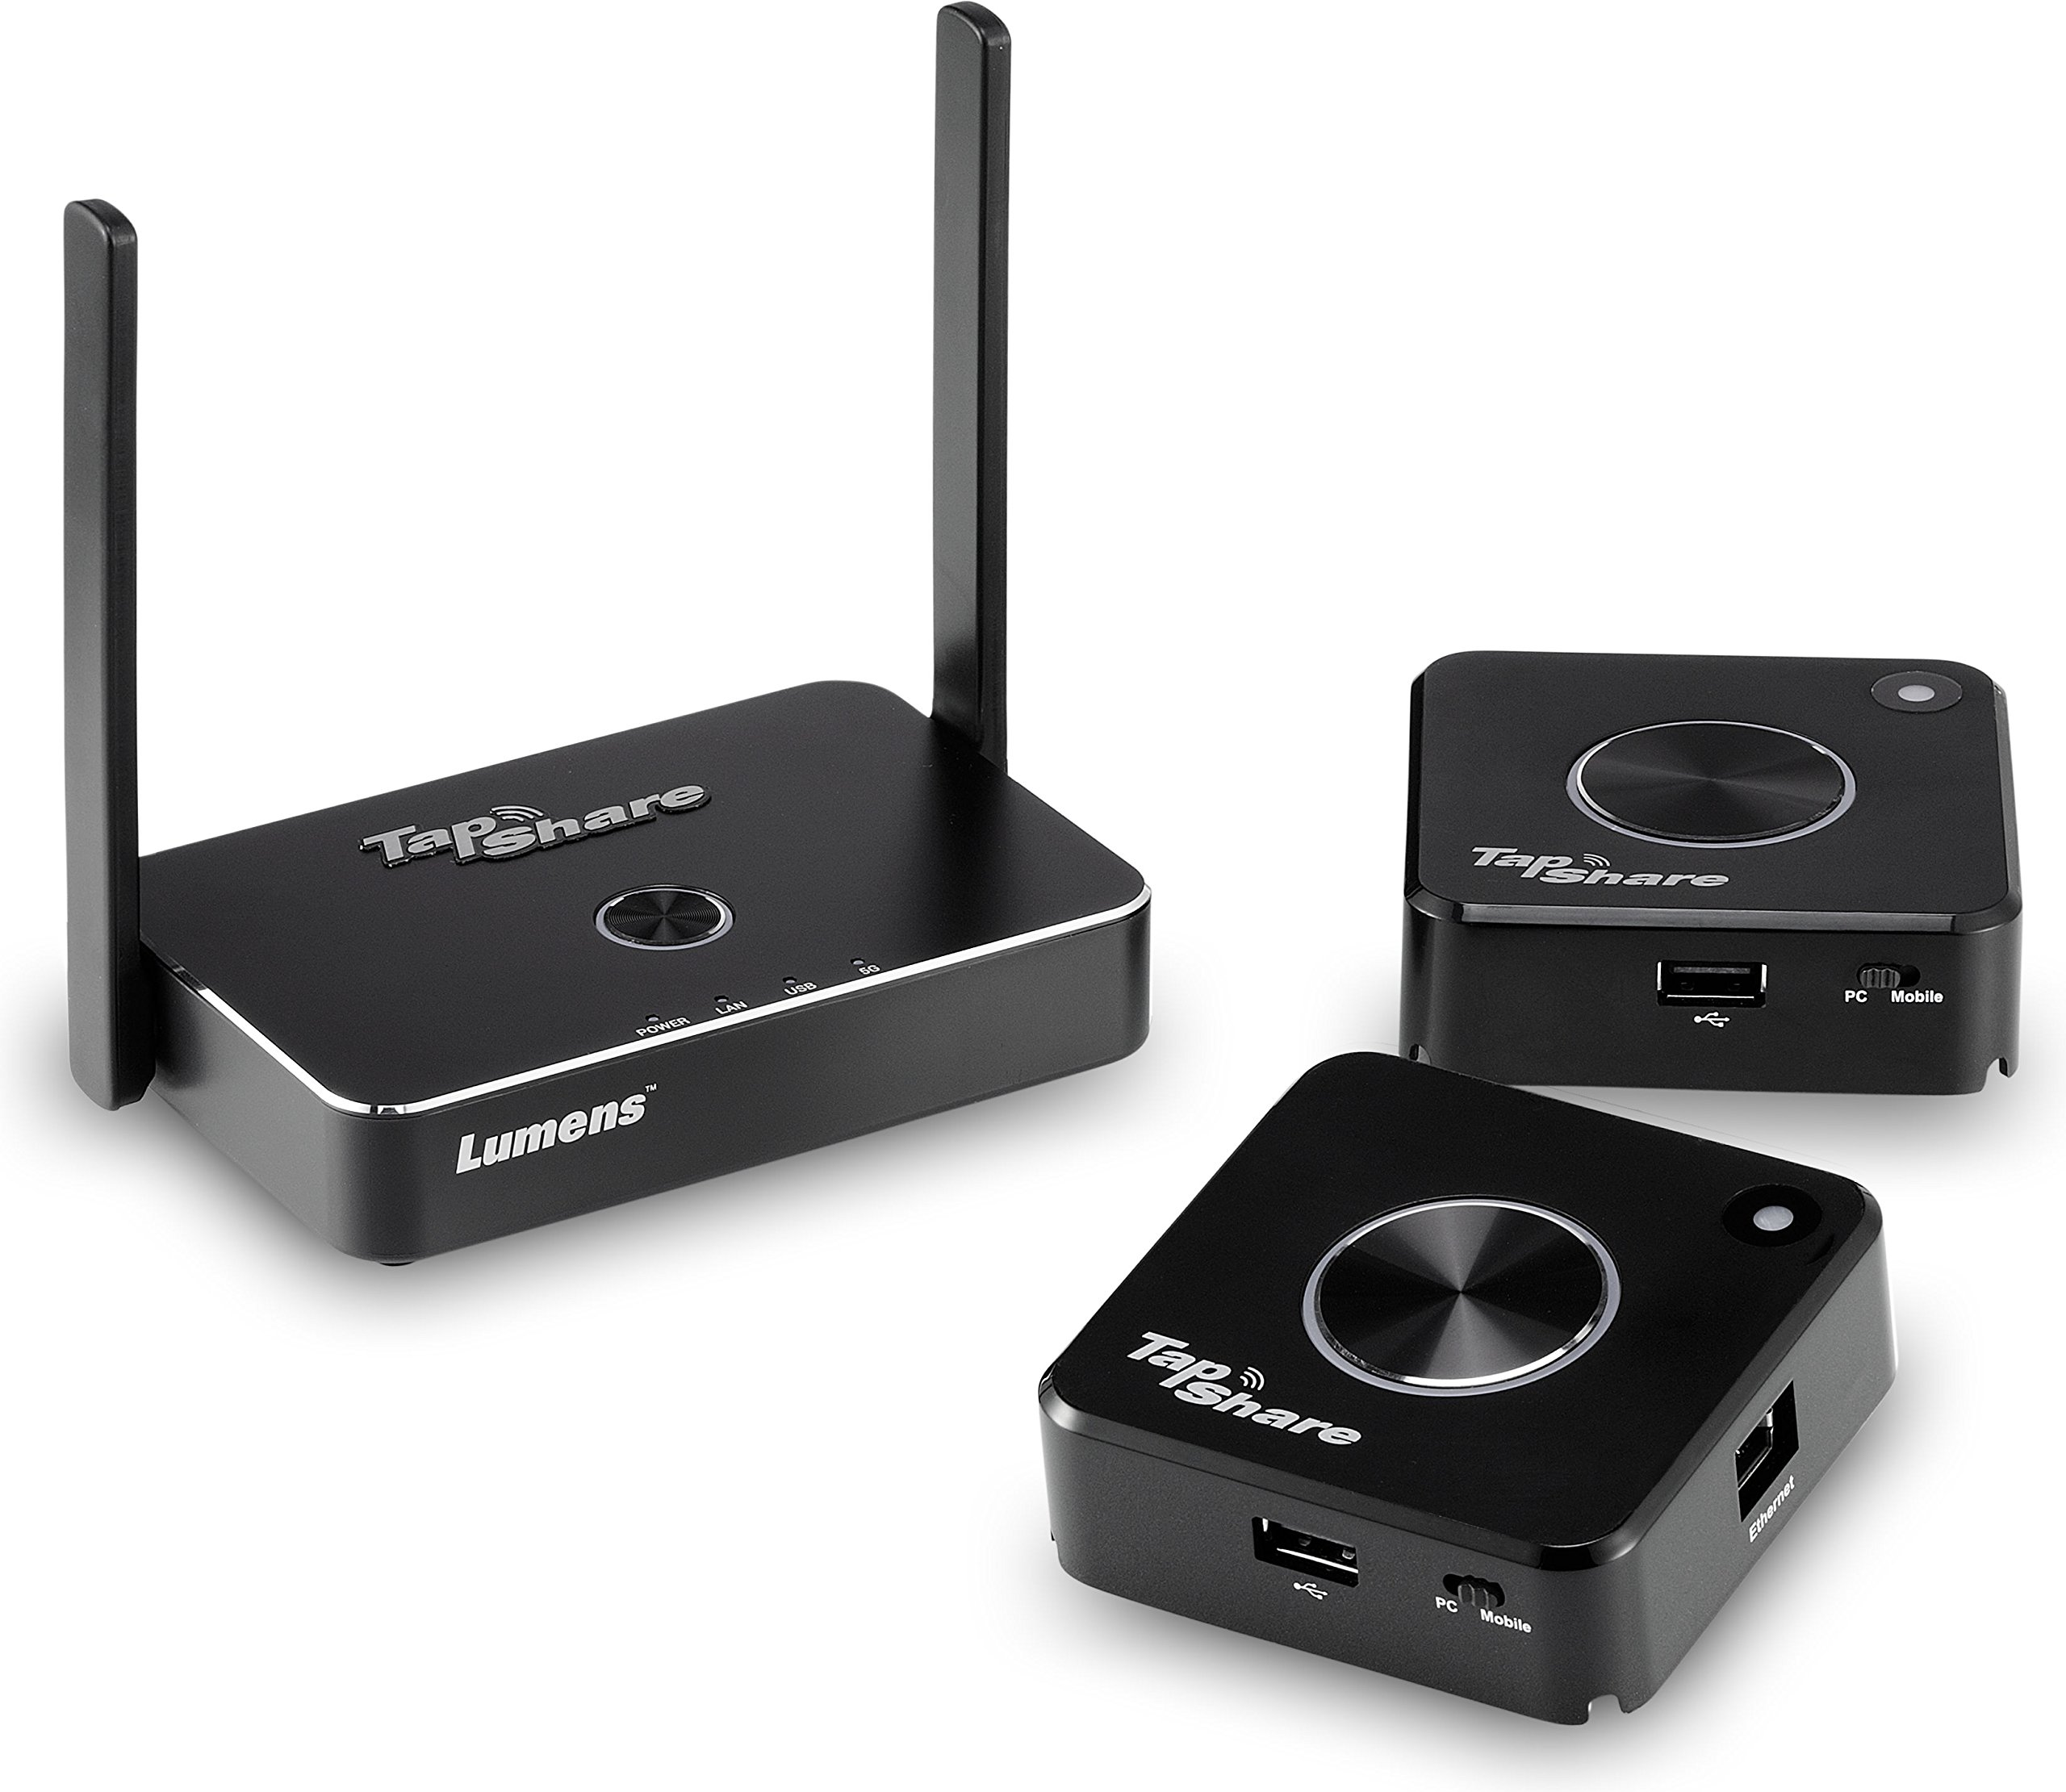 Lumens TS20-2T1R Model TS20 TapShare Wireless Presentation System Bundle, Bundle Includes 1 Tapshare Box and 2 Tapshare Pods, Multi-Interface Supports HDMI, Display Port, USB, and IP by TapShare (Image #1)